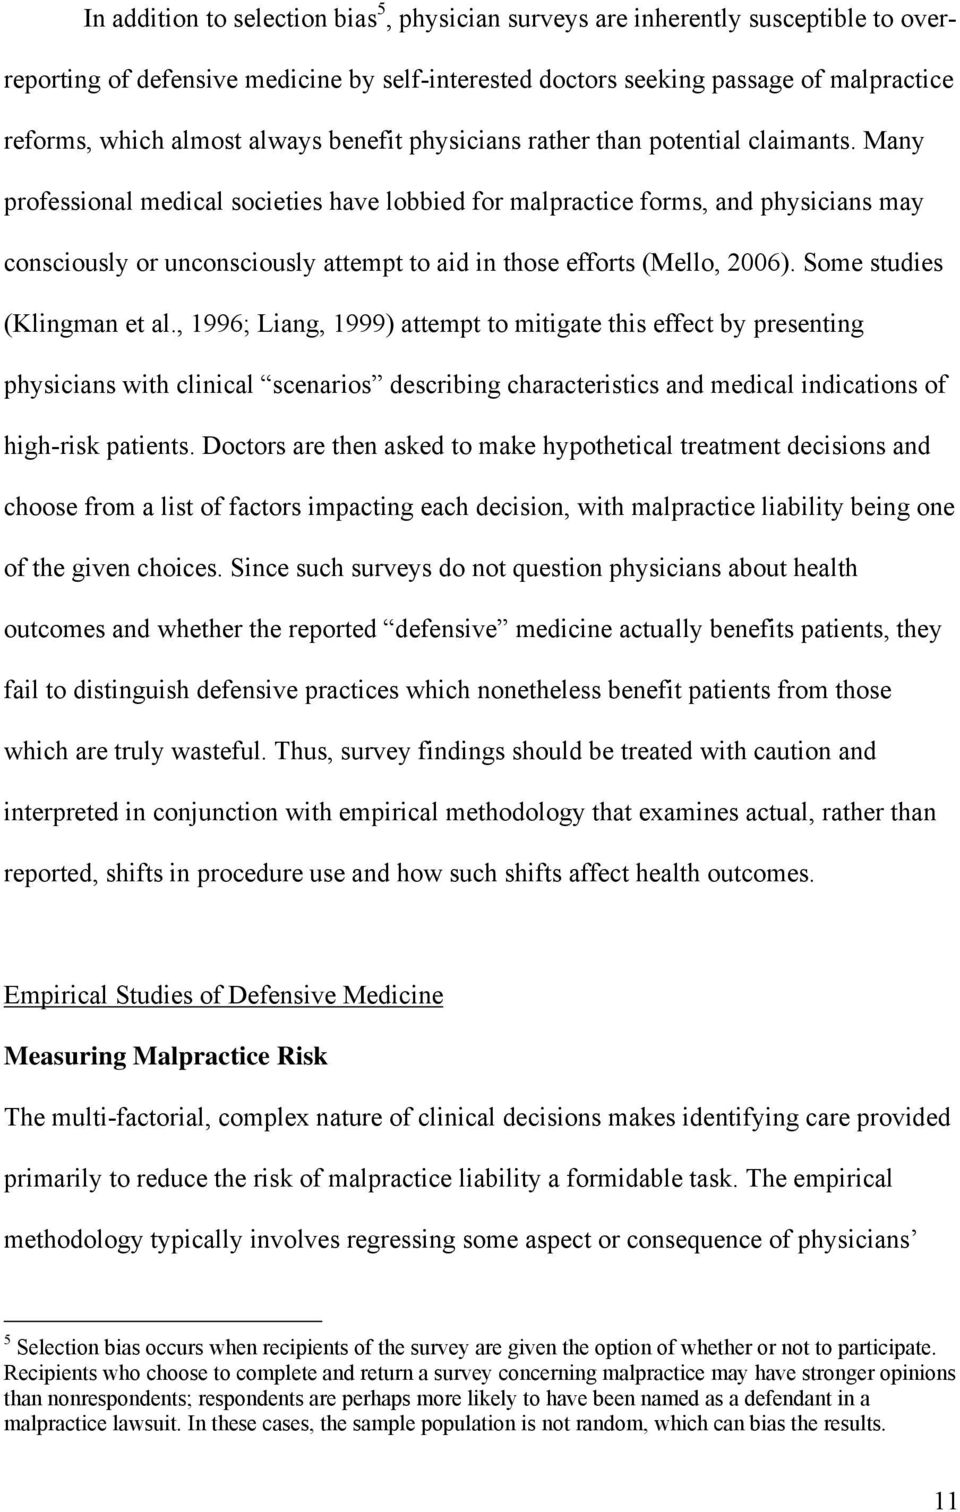 Many professional medical societies have lobbied for malpractice forms, and physicians may consciously or unconsciously attempt to aid in those efforts (Mello, 2006). Some studies (Klingman et al.